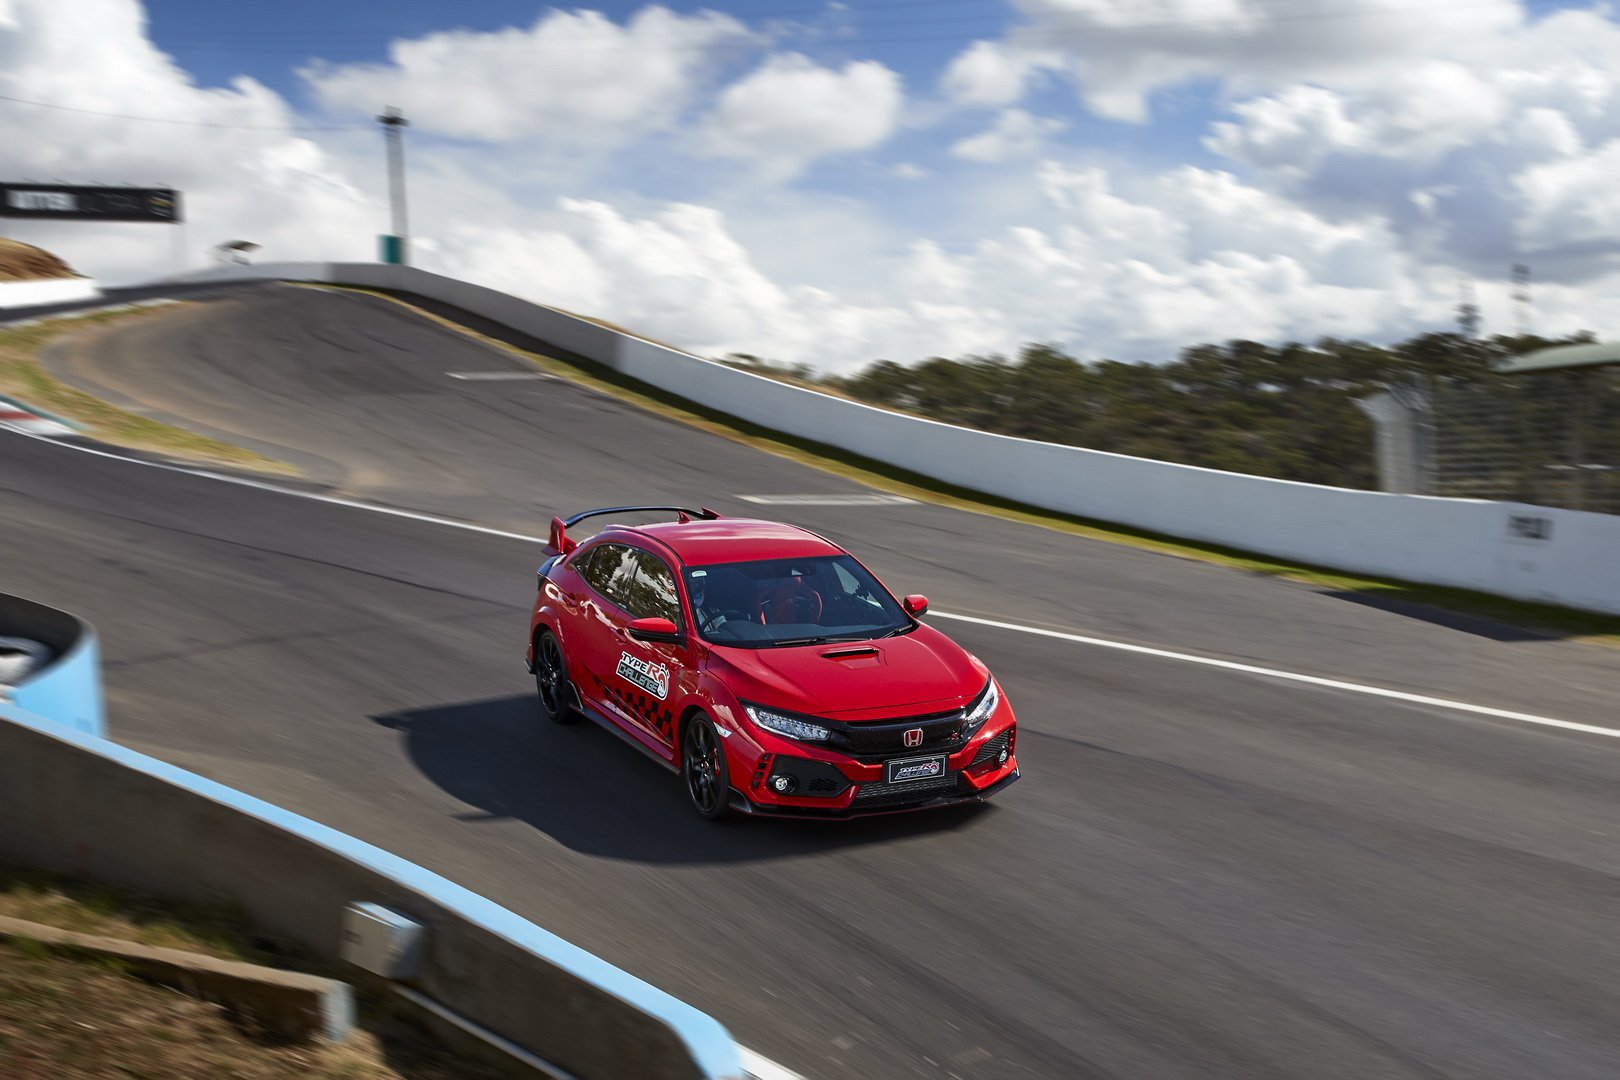 Honda Civic Type R Jenson Button Australia (4)